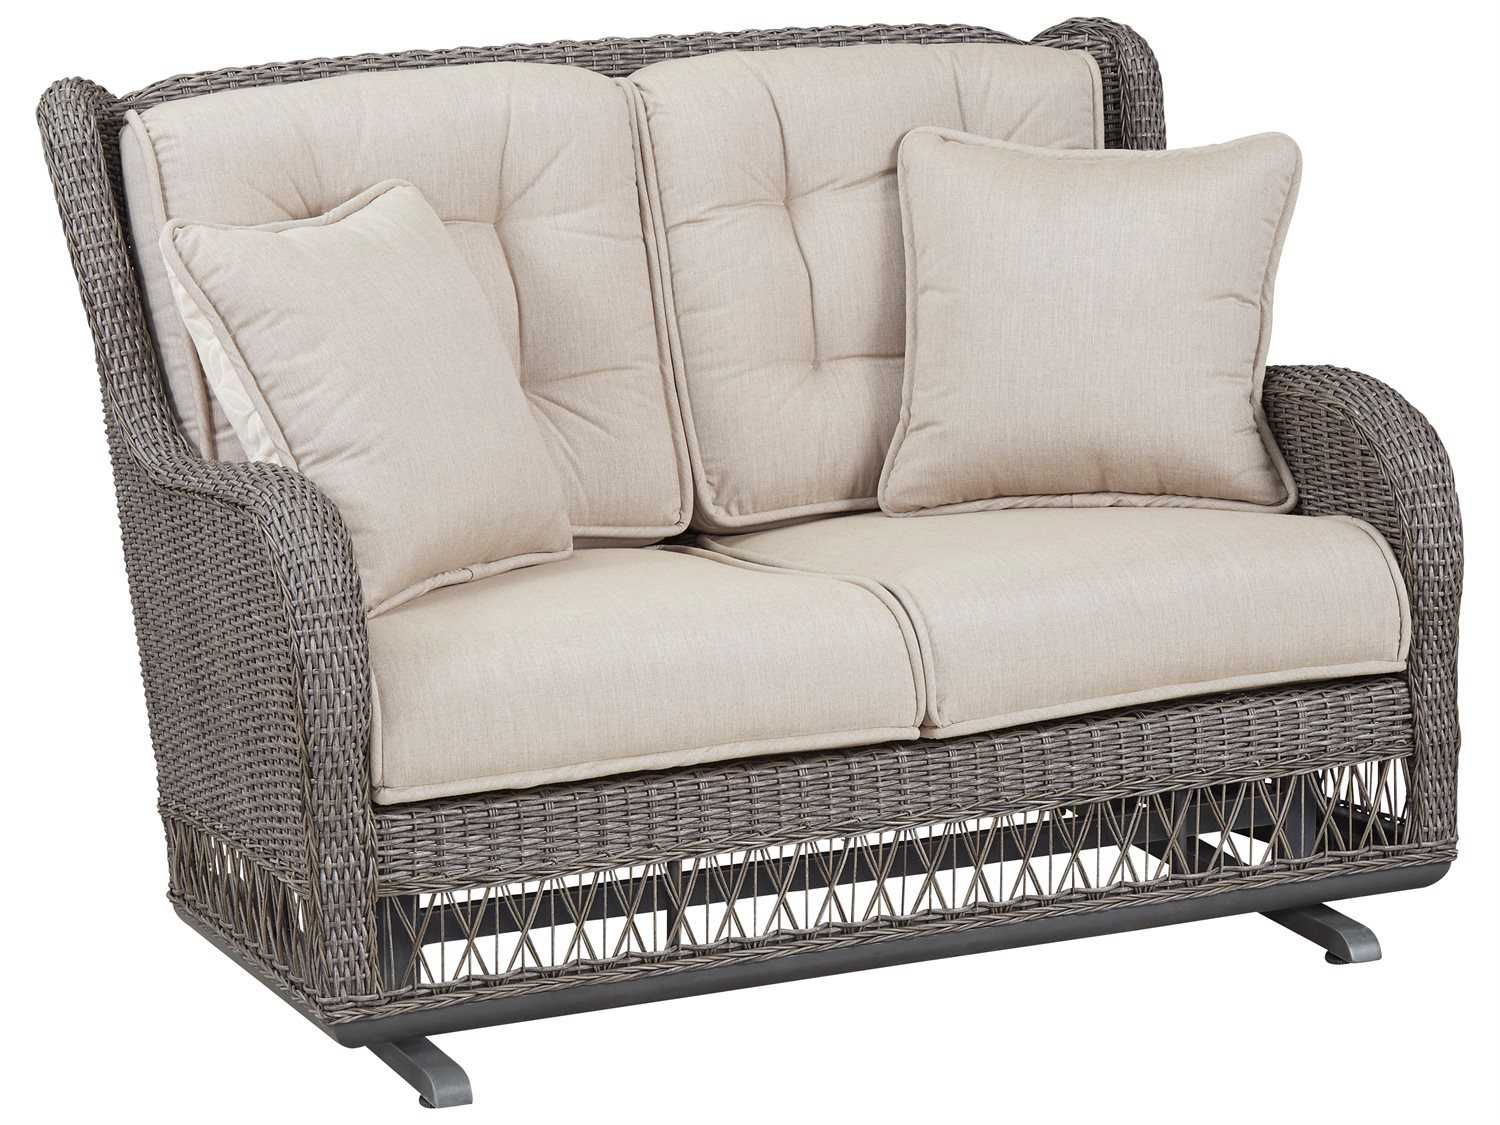 Paula Deen Outdoor Dogwood Wicker Loveseat Glider 17004190